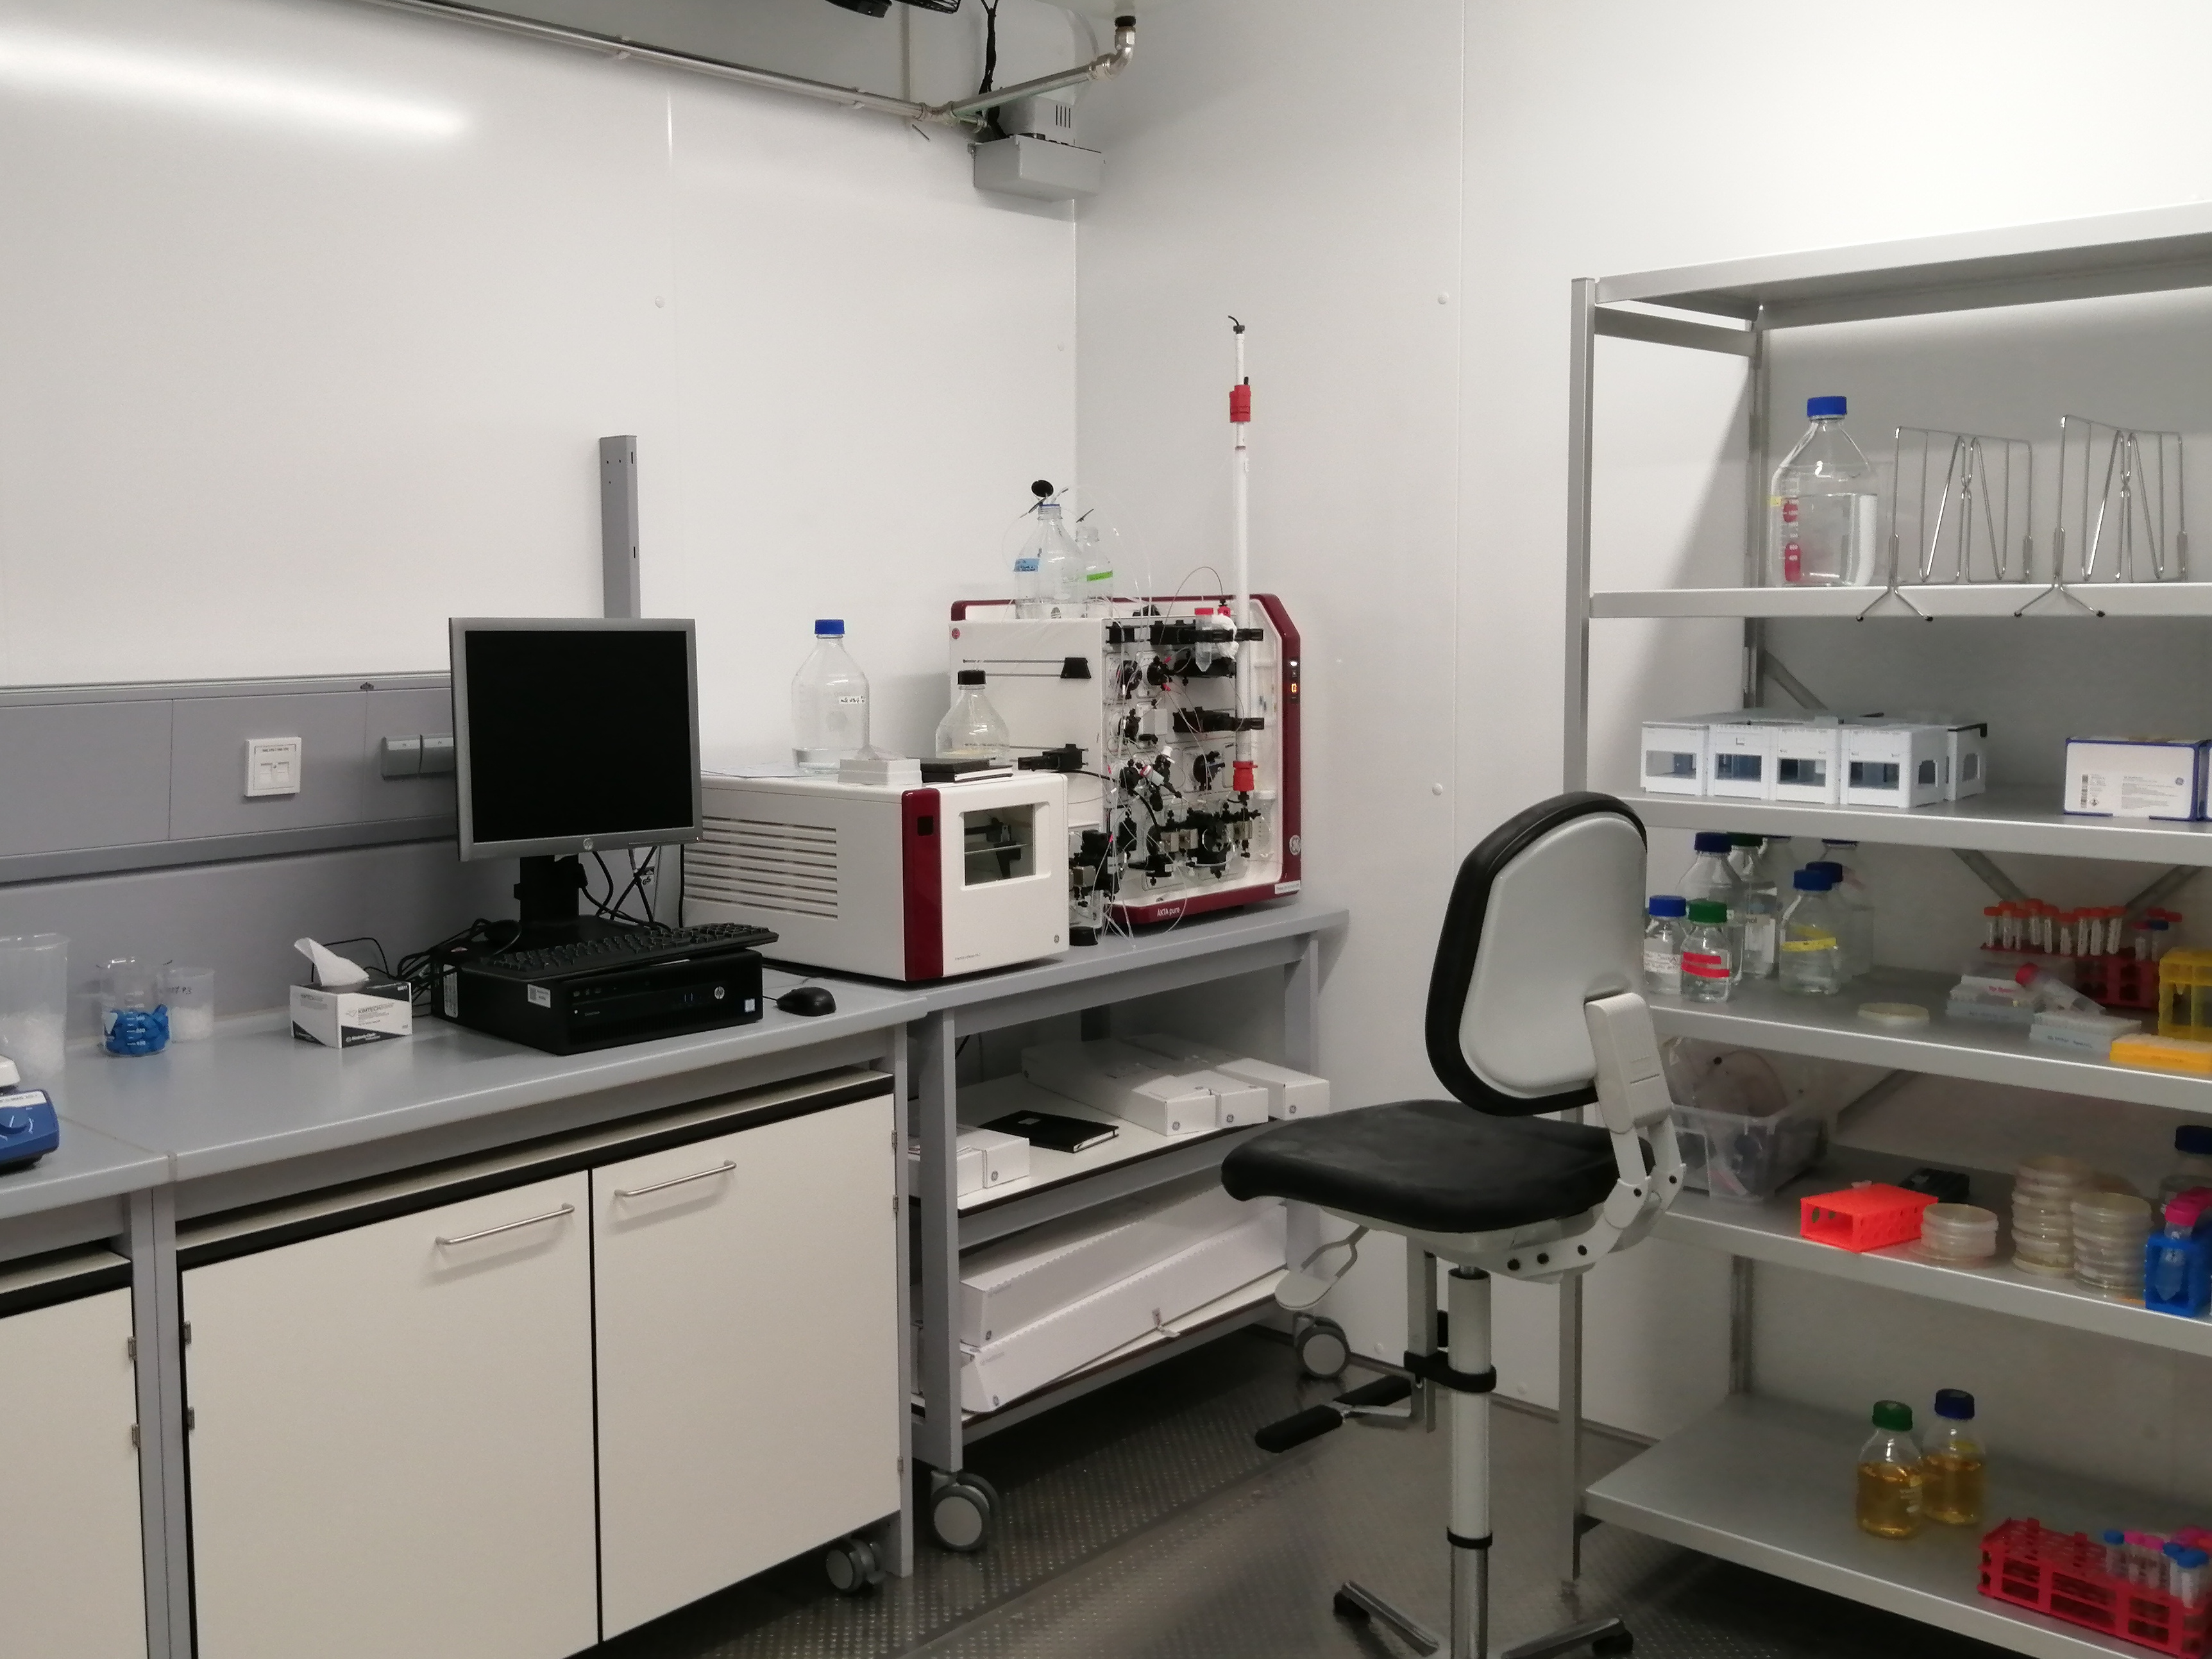 Cold room equipped with chromatography system and storage space